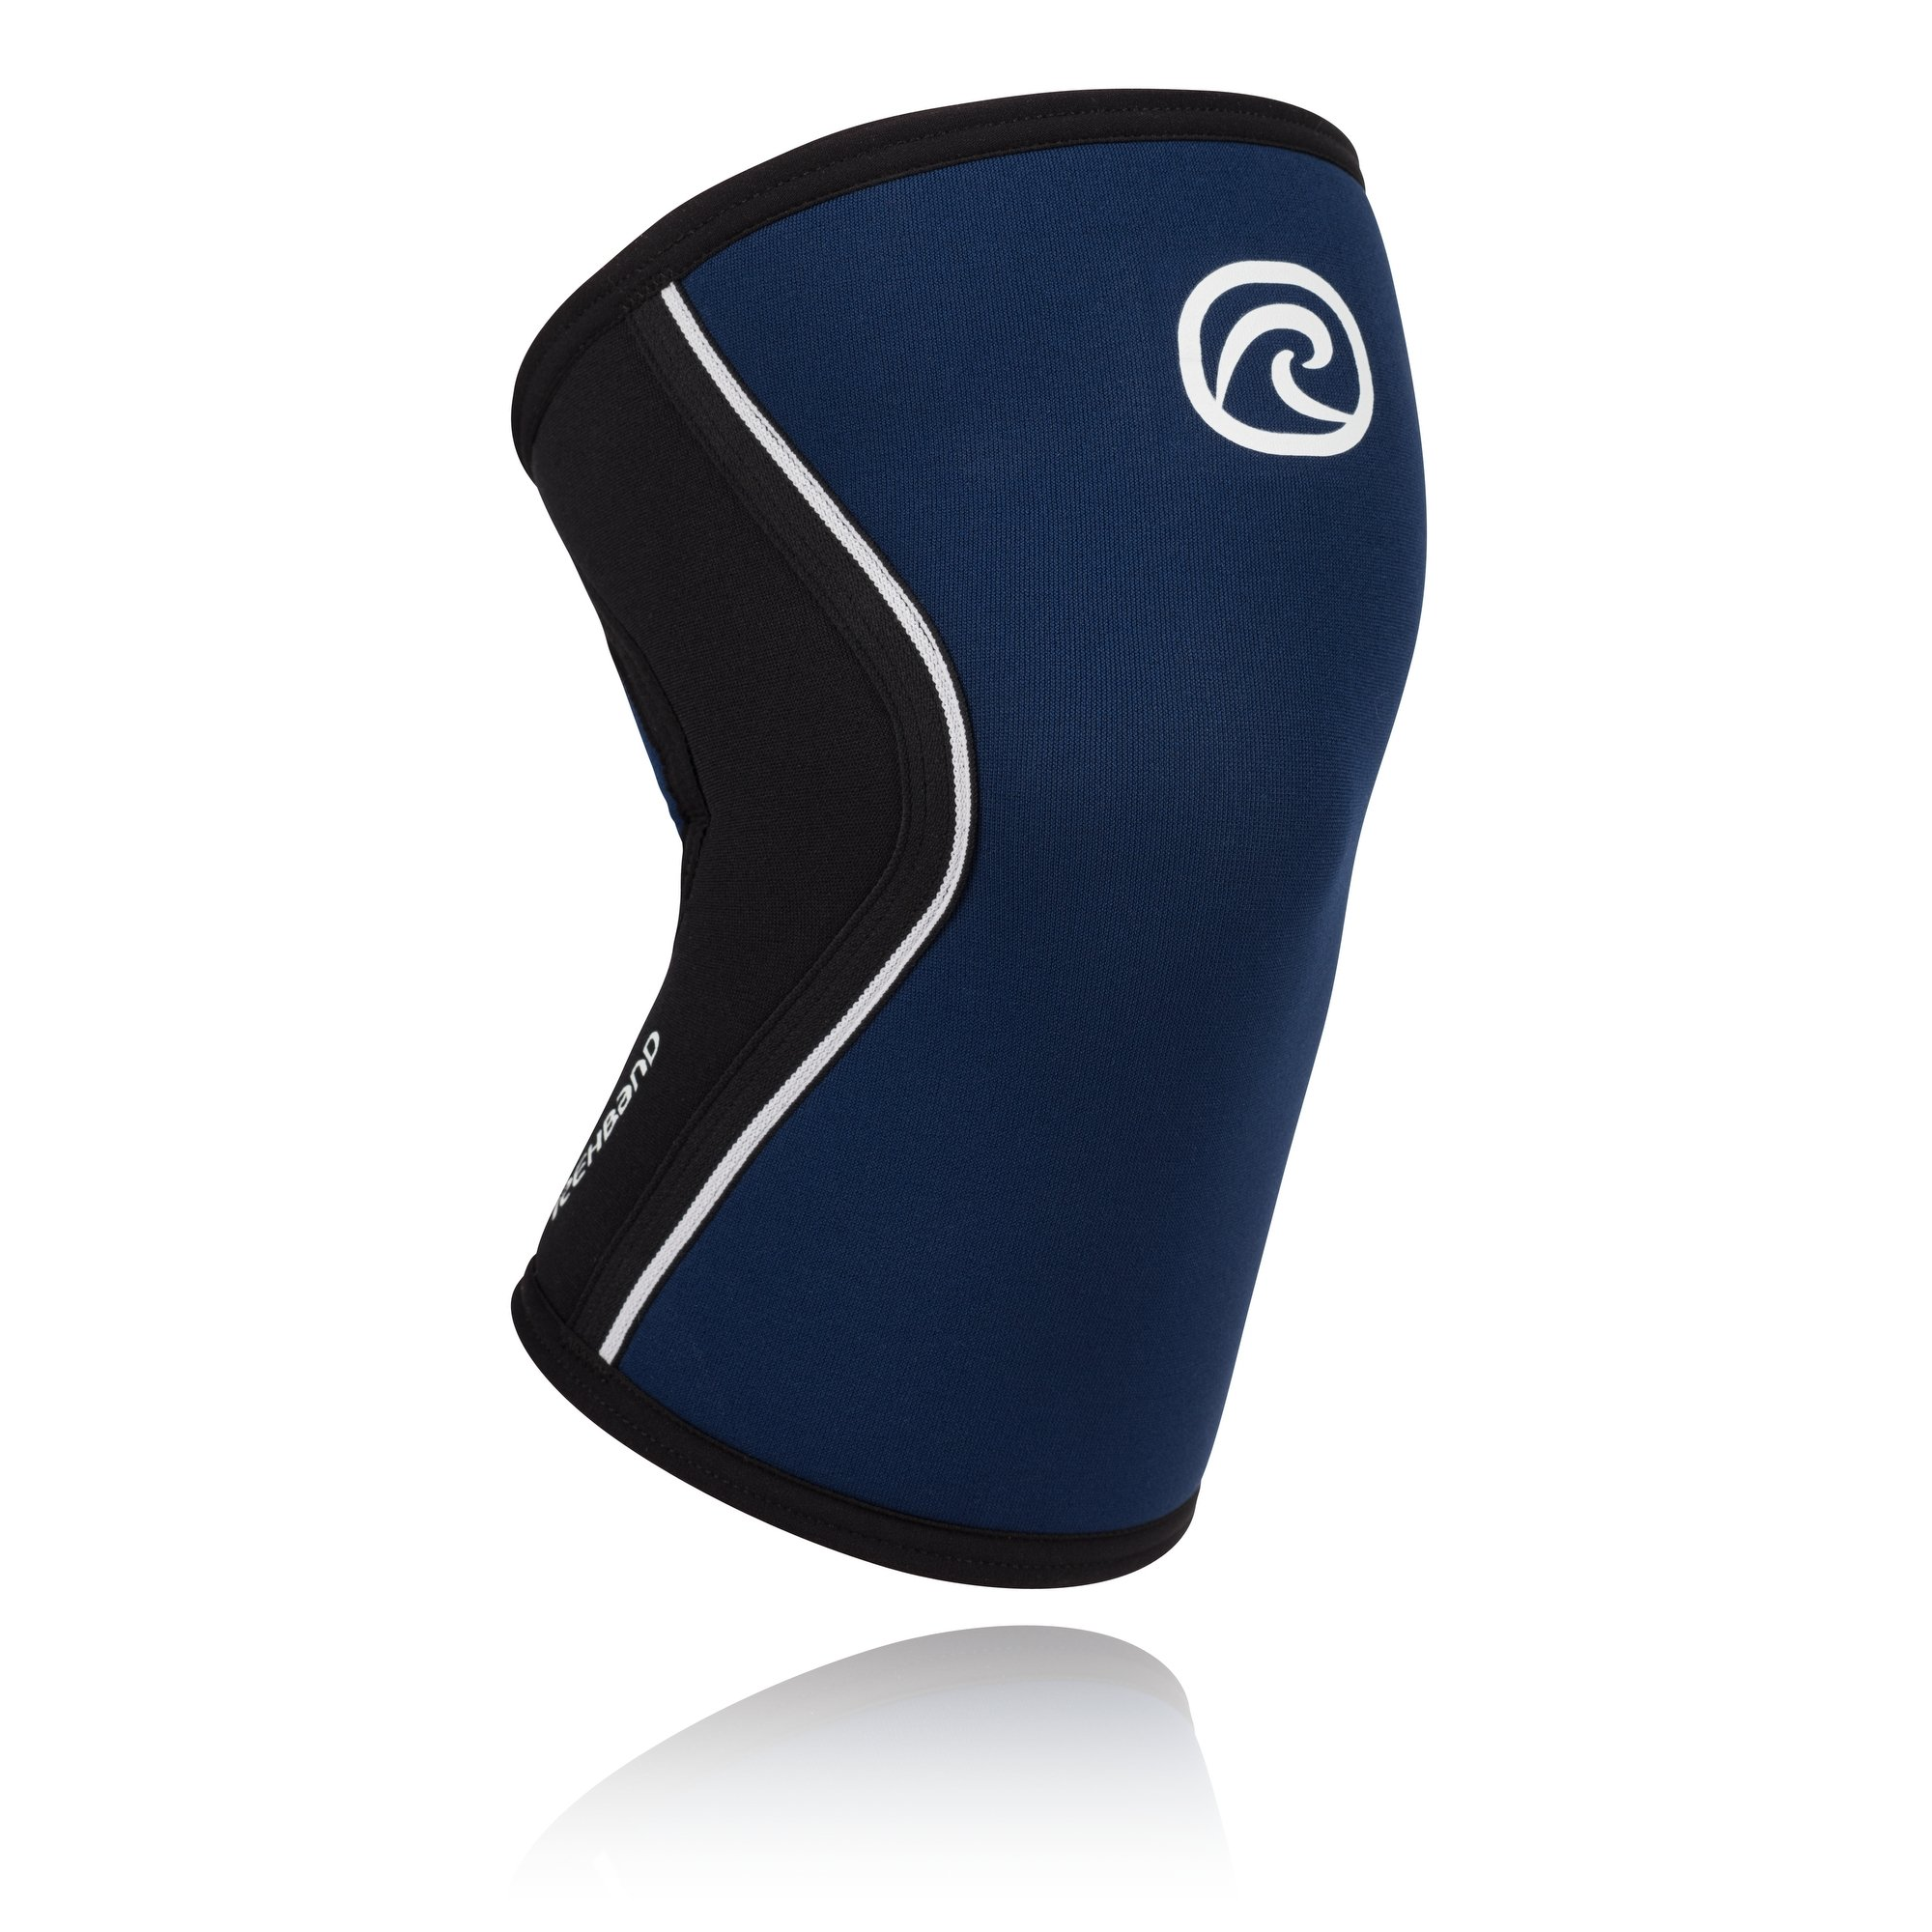 Rehband Rx Knee Support 5mm - X-Small - Navy - Expand Your Movement + Cross Training Potential - Knee Sleeve for Fitness - Feel Stronger + More Secure - Relieve Strain - 1 Sleeve